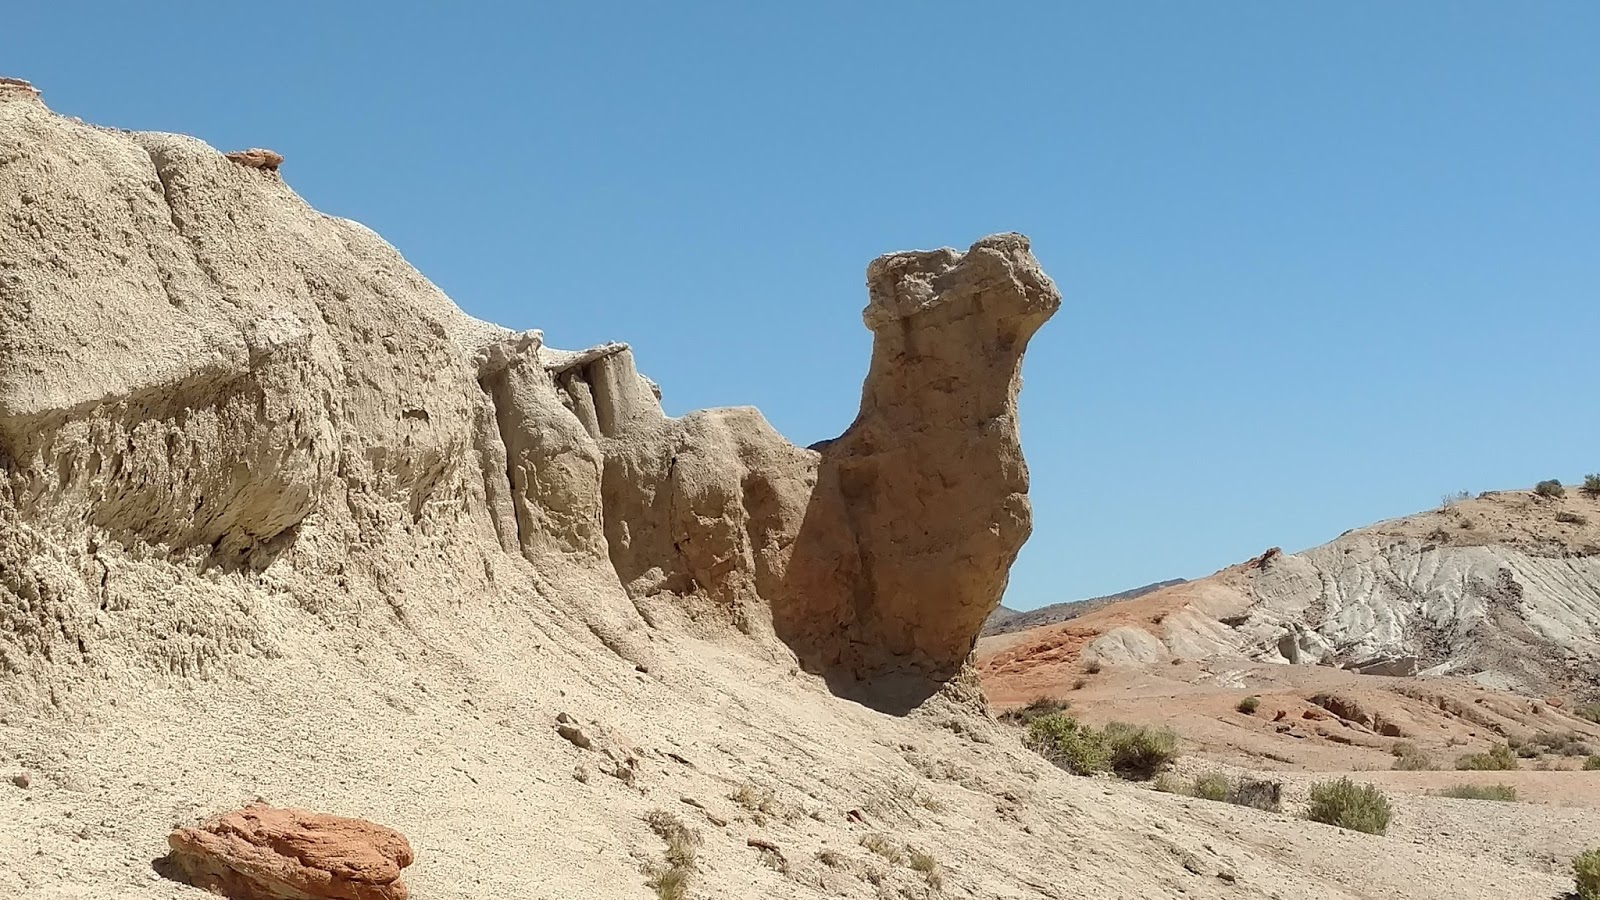 Dave'n'Kathy's Vagabond Blog: Red Rock Canyon State Park